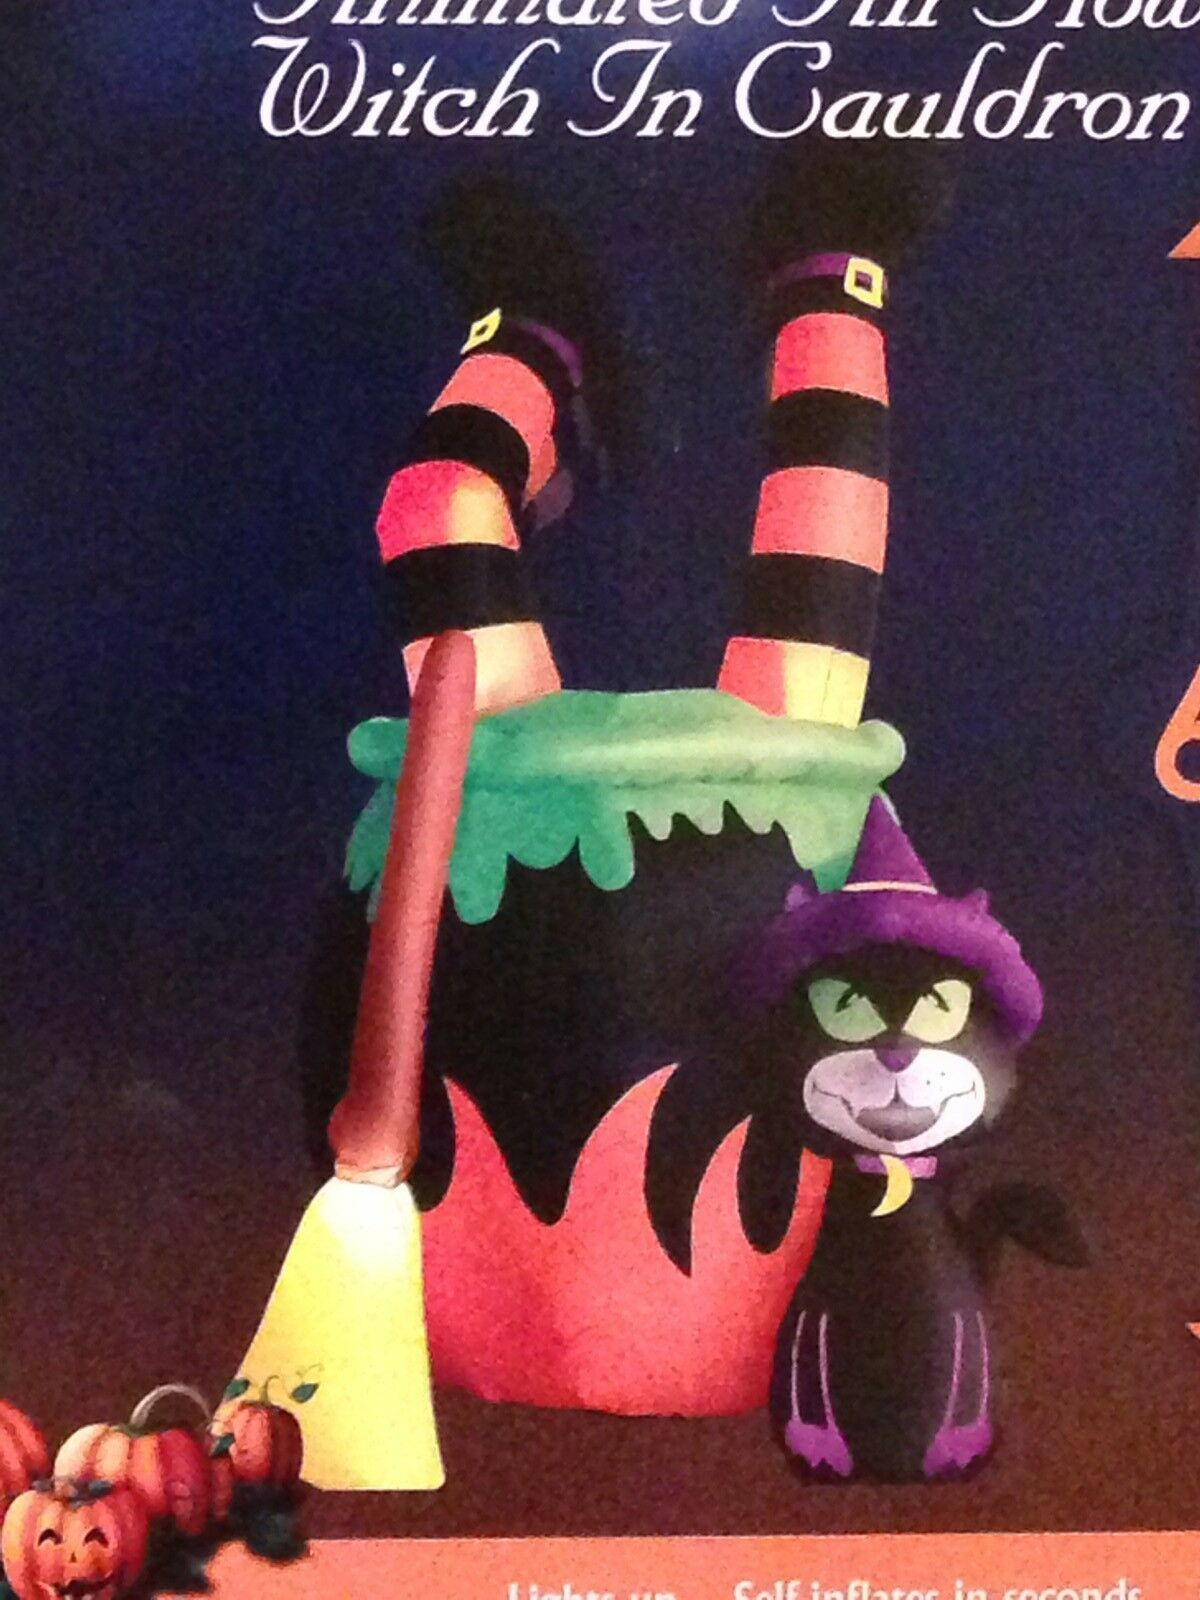 Halloween Led Animated Witch In Cauldron Airblown/inflatable Decor